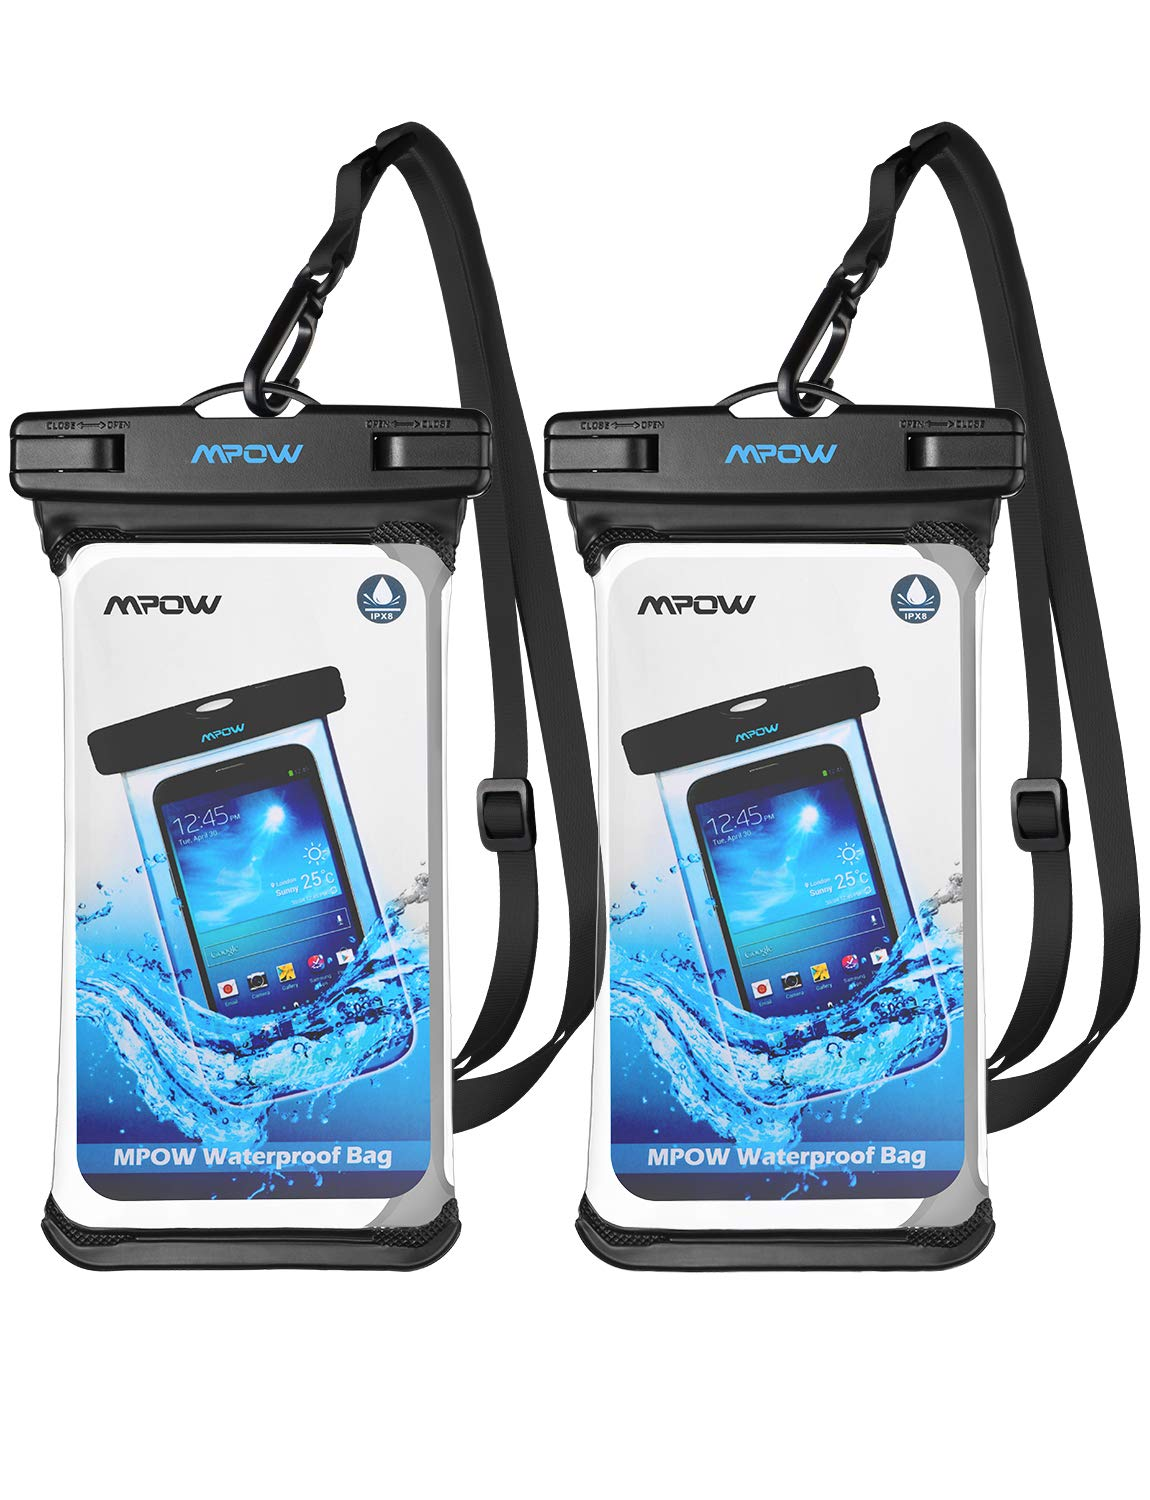 Mpow Waterproof Case, Full Transparency Waterproof Cellphone Dry Bag IPX8 Universal Phone Pouch Compatible for iPhone Xs Max/XS/XR/X/8, Galaxy S10/S9, Note 9, Google up to 6.8 Inches (Black+Black) by Mpow